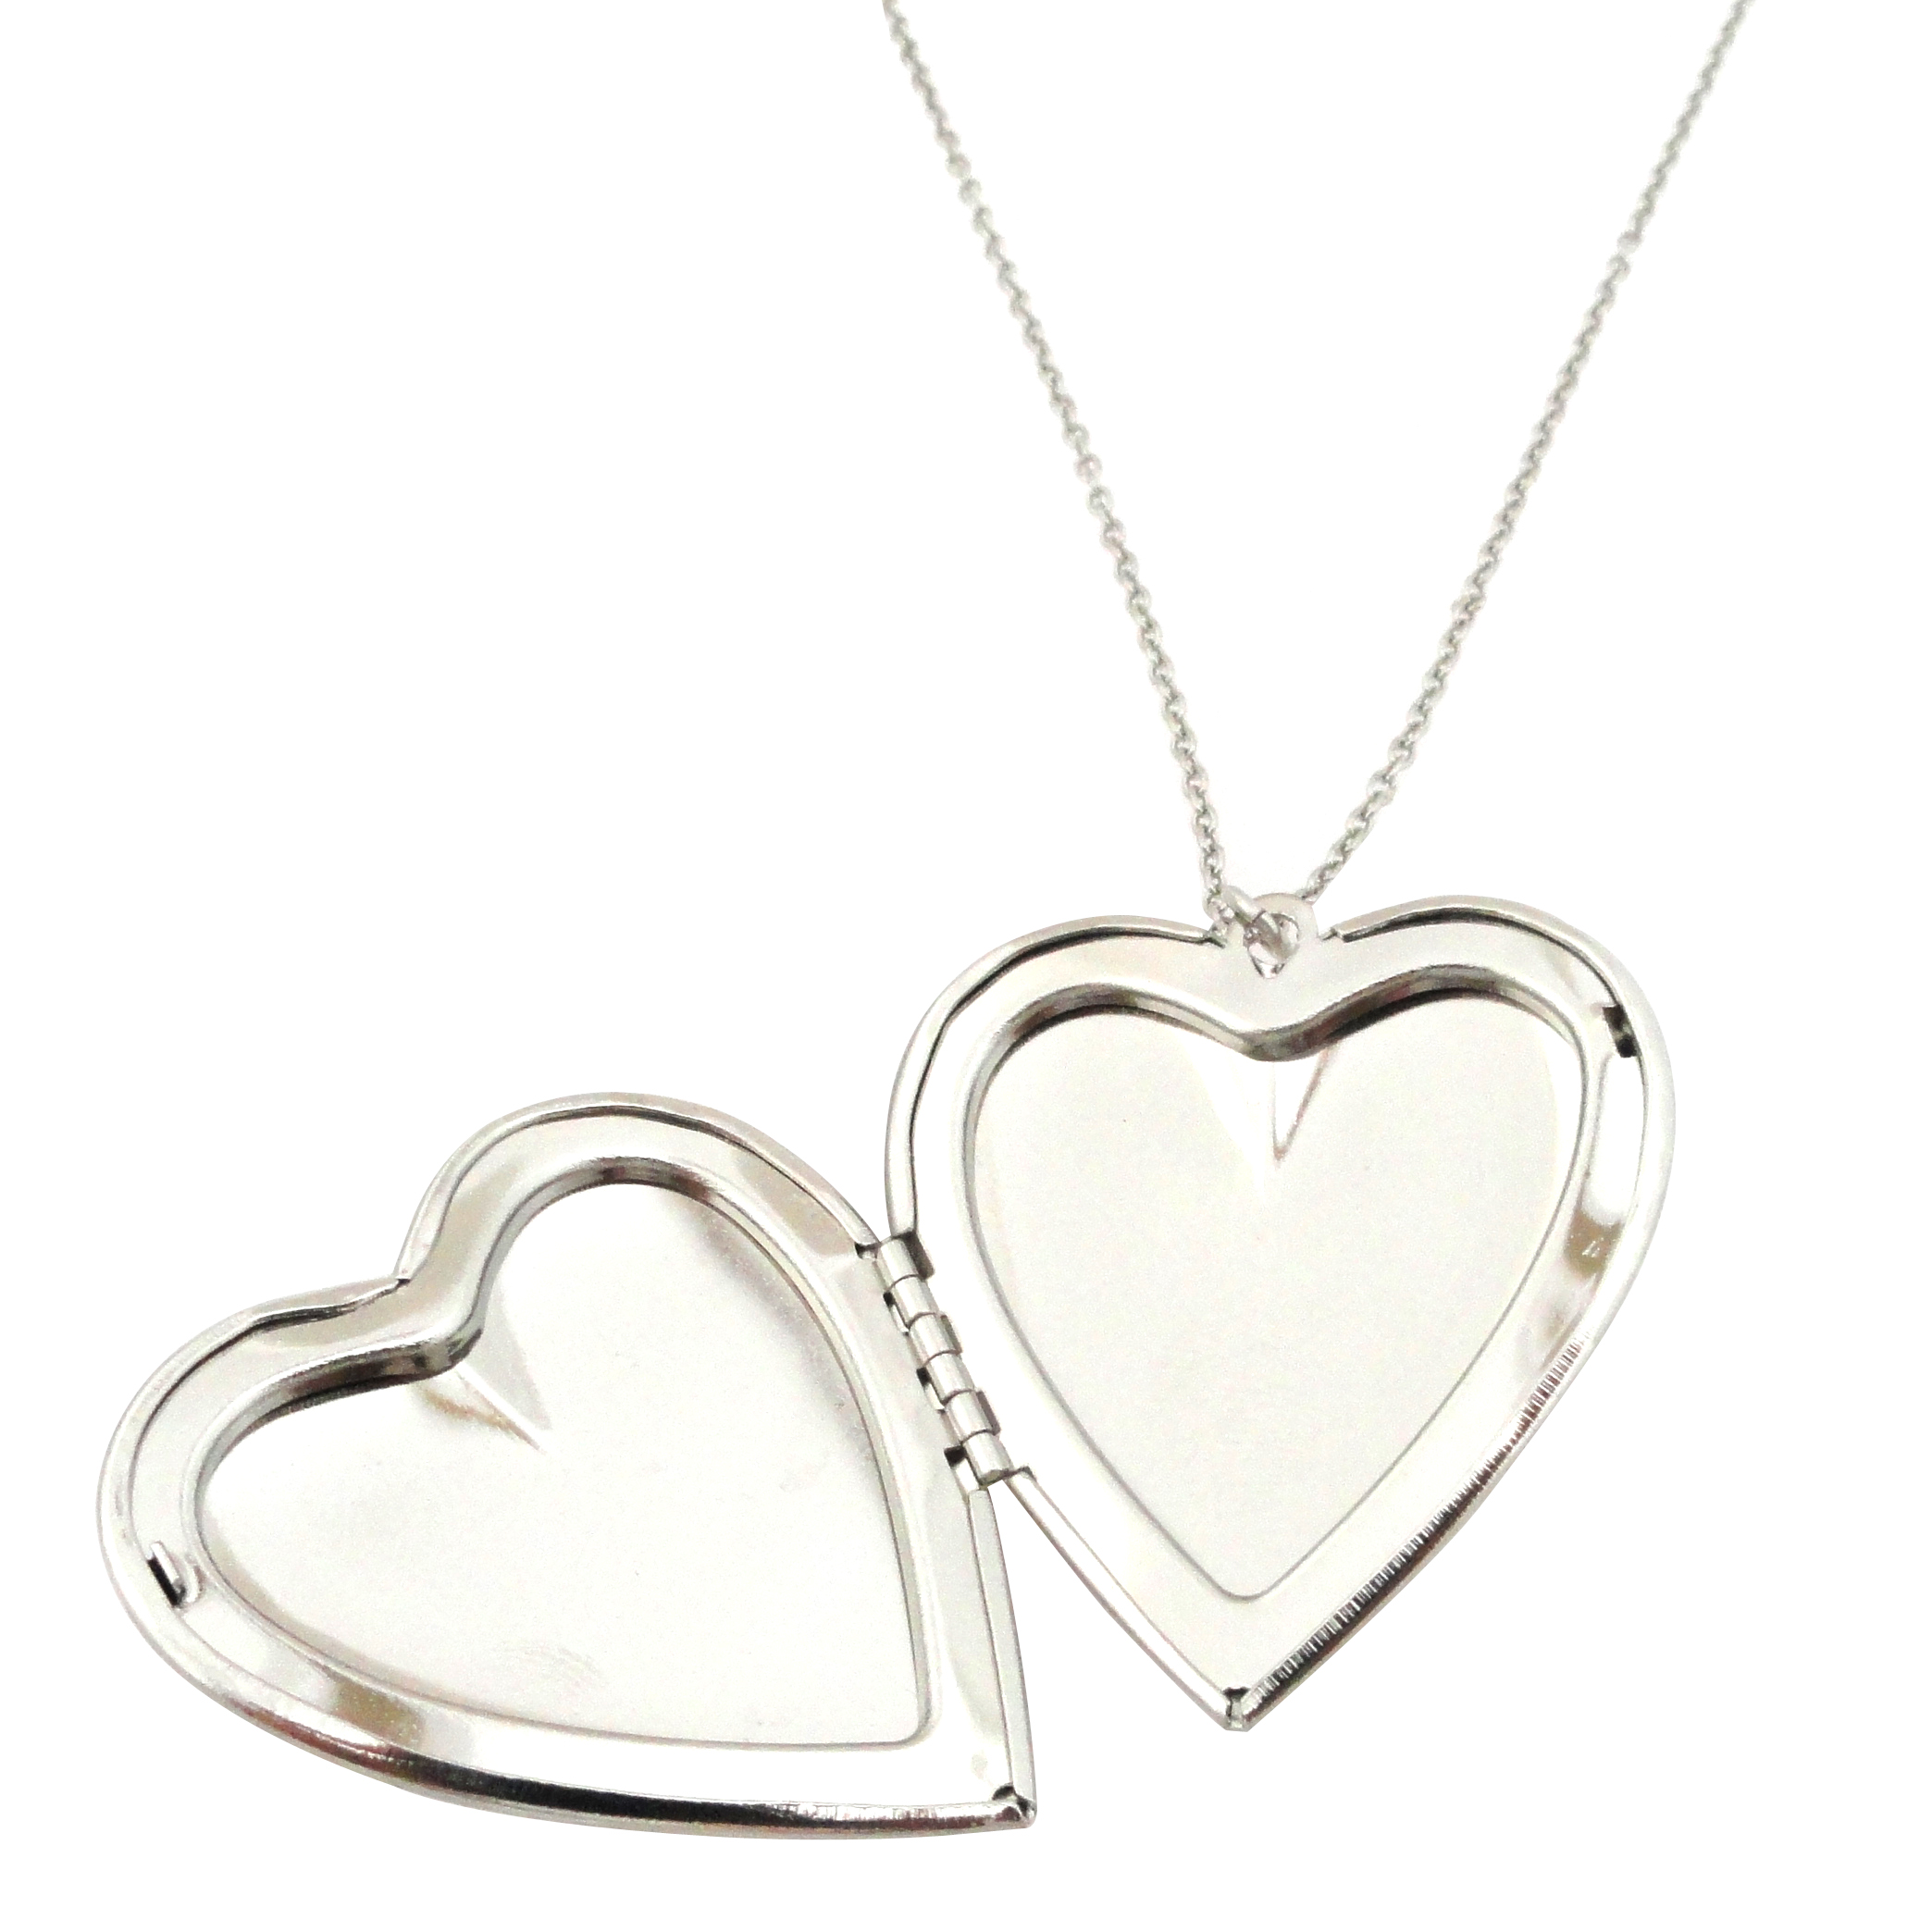 locket sday valentinesday co from i modern new you heart happy valentine open the tiffany love momma pendant lockets